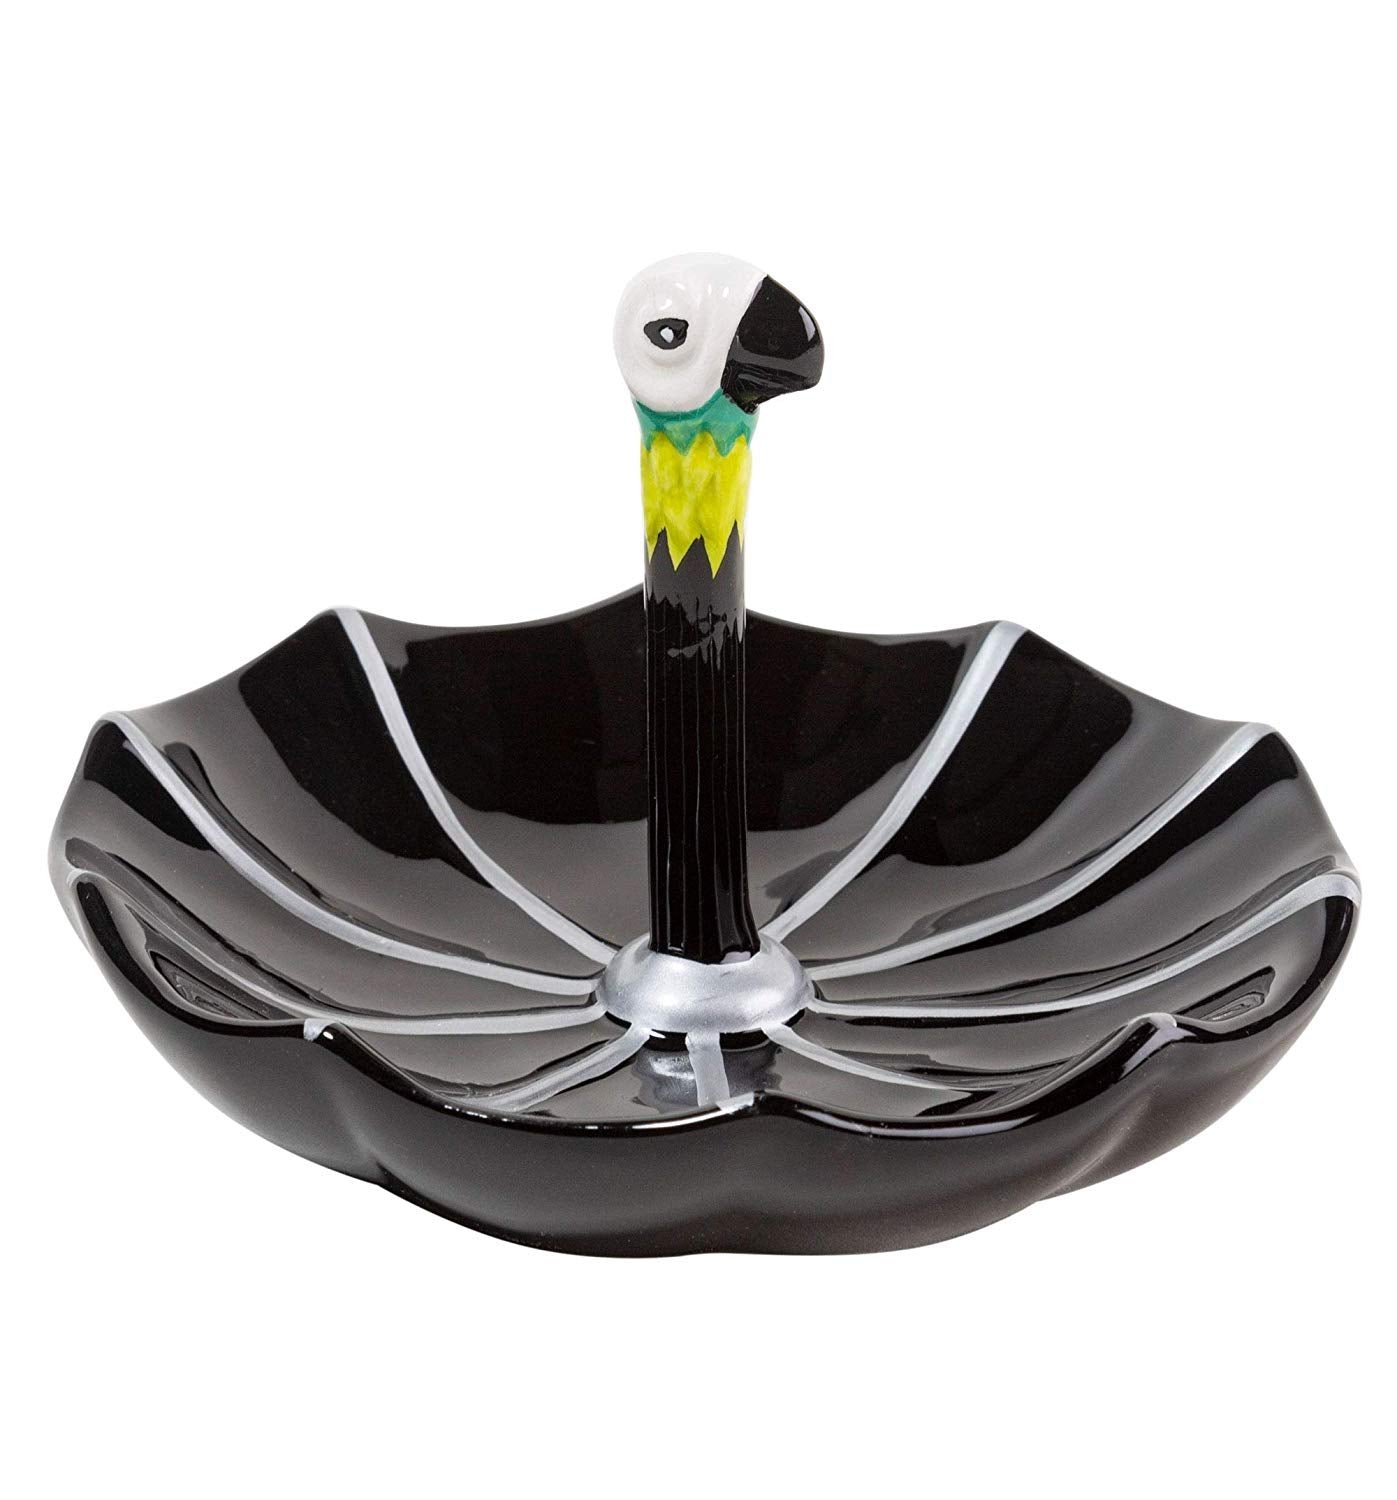 Mary Poppins Accessory Dish - Umbrella, Jewellery Cleaning & Care by The Celebrity Gift Company